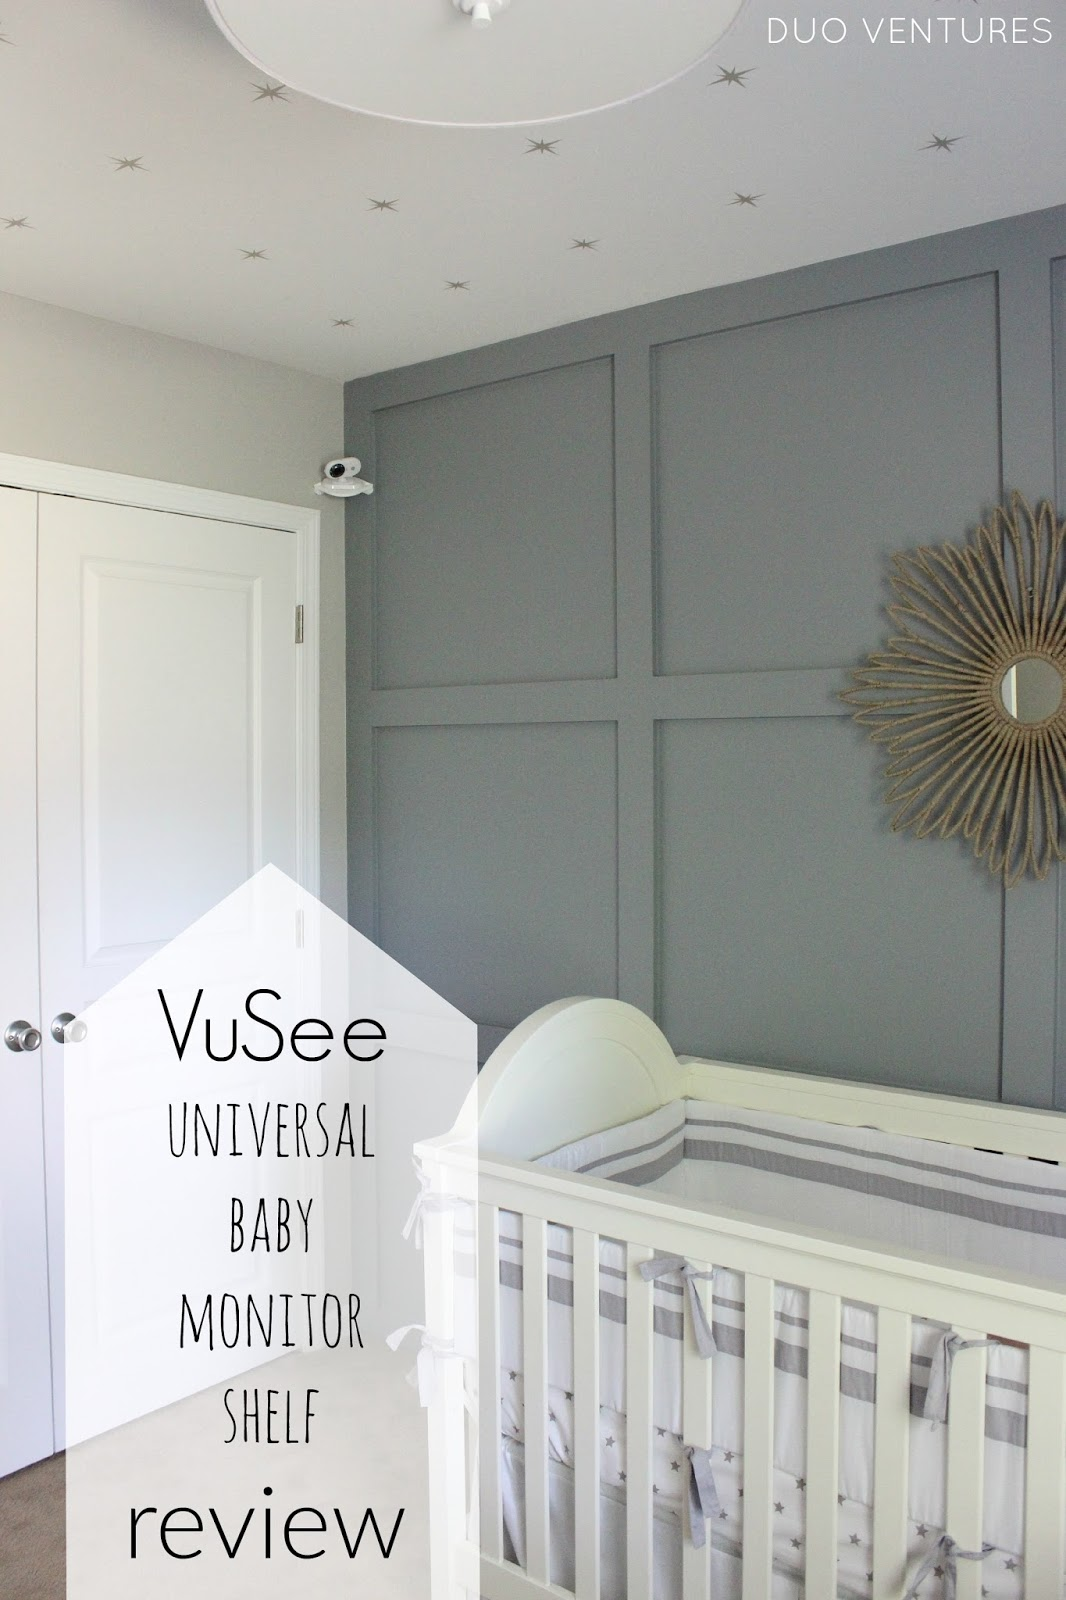 Baby Room Monitors withings smart baby monitor The Nursery Vusee Universal Baby Monitor Shelf Review